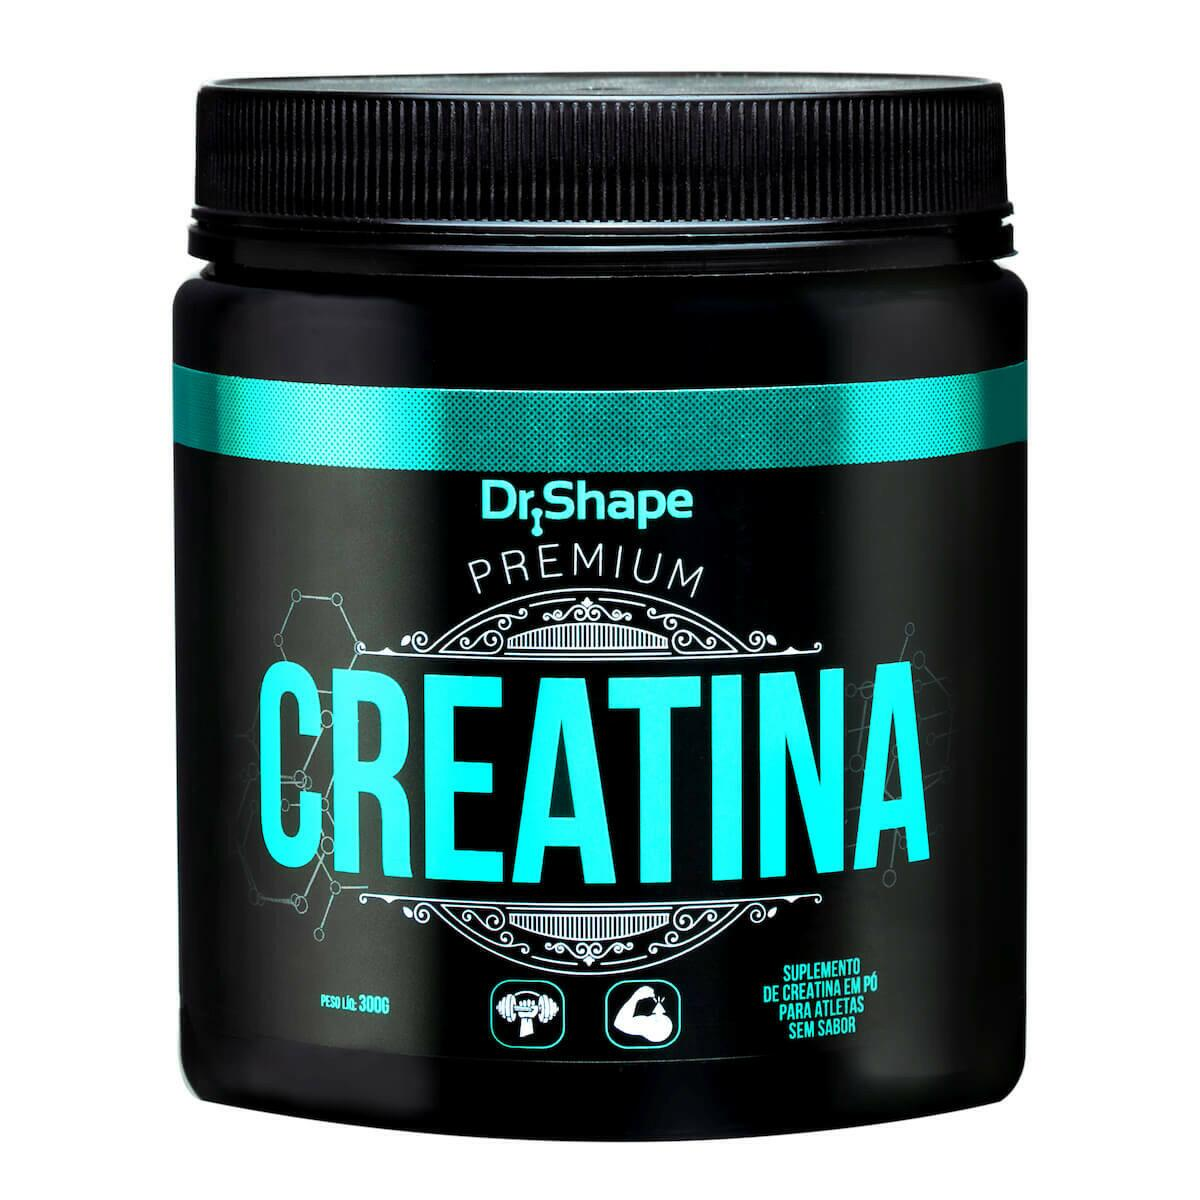 CREATINA 300GR - DR. SHAPE